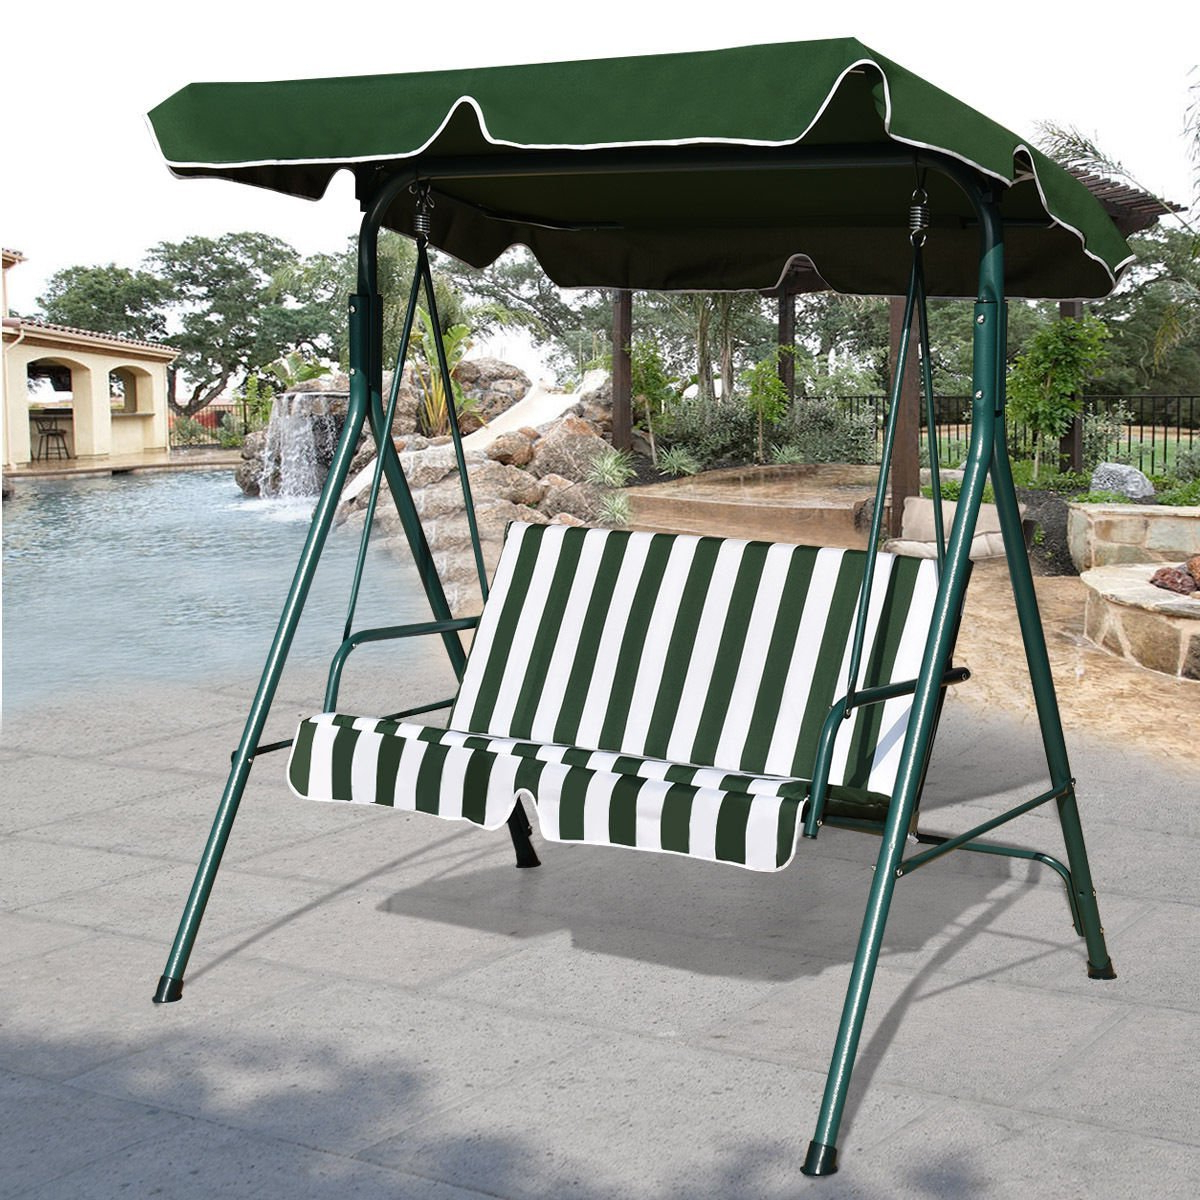 Cheap Canopy For Garden Swing Seat, Find Canopy For Garden For Popular 2 Person Gray Steel Outdoor Swings (View 10 of 25)